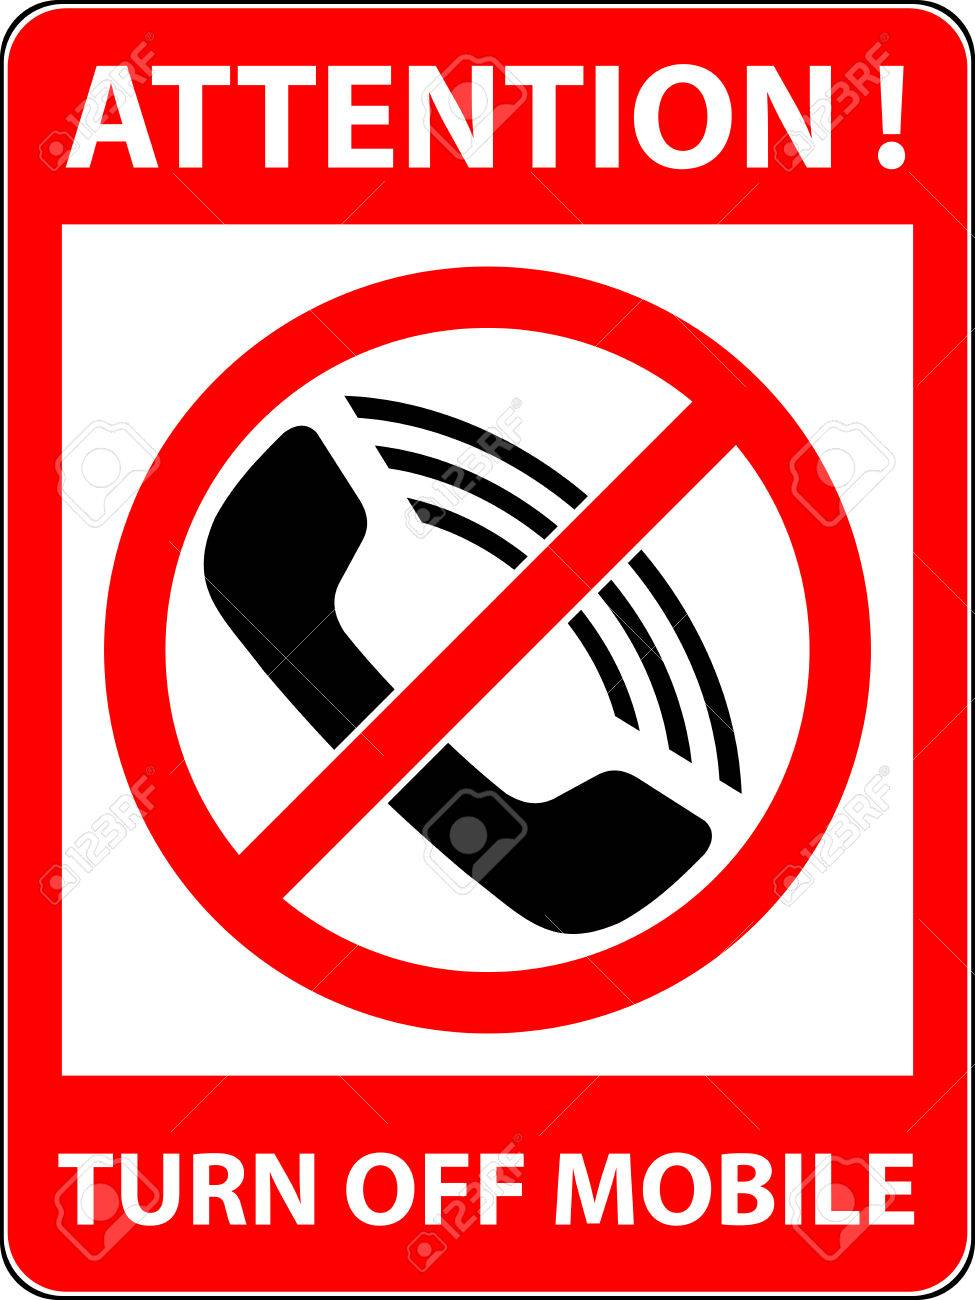 no phone telephone cellphone and smartphone prohibited symbol sign indicating the prohibition or